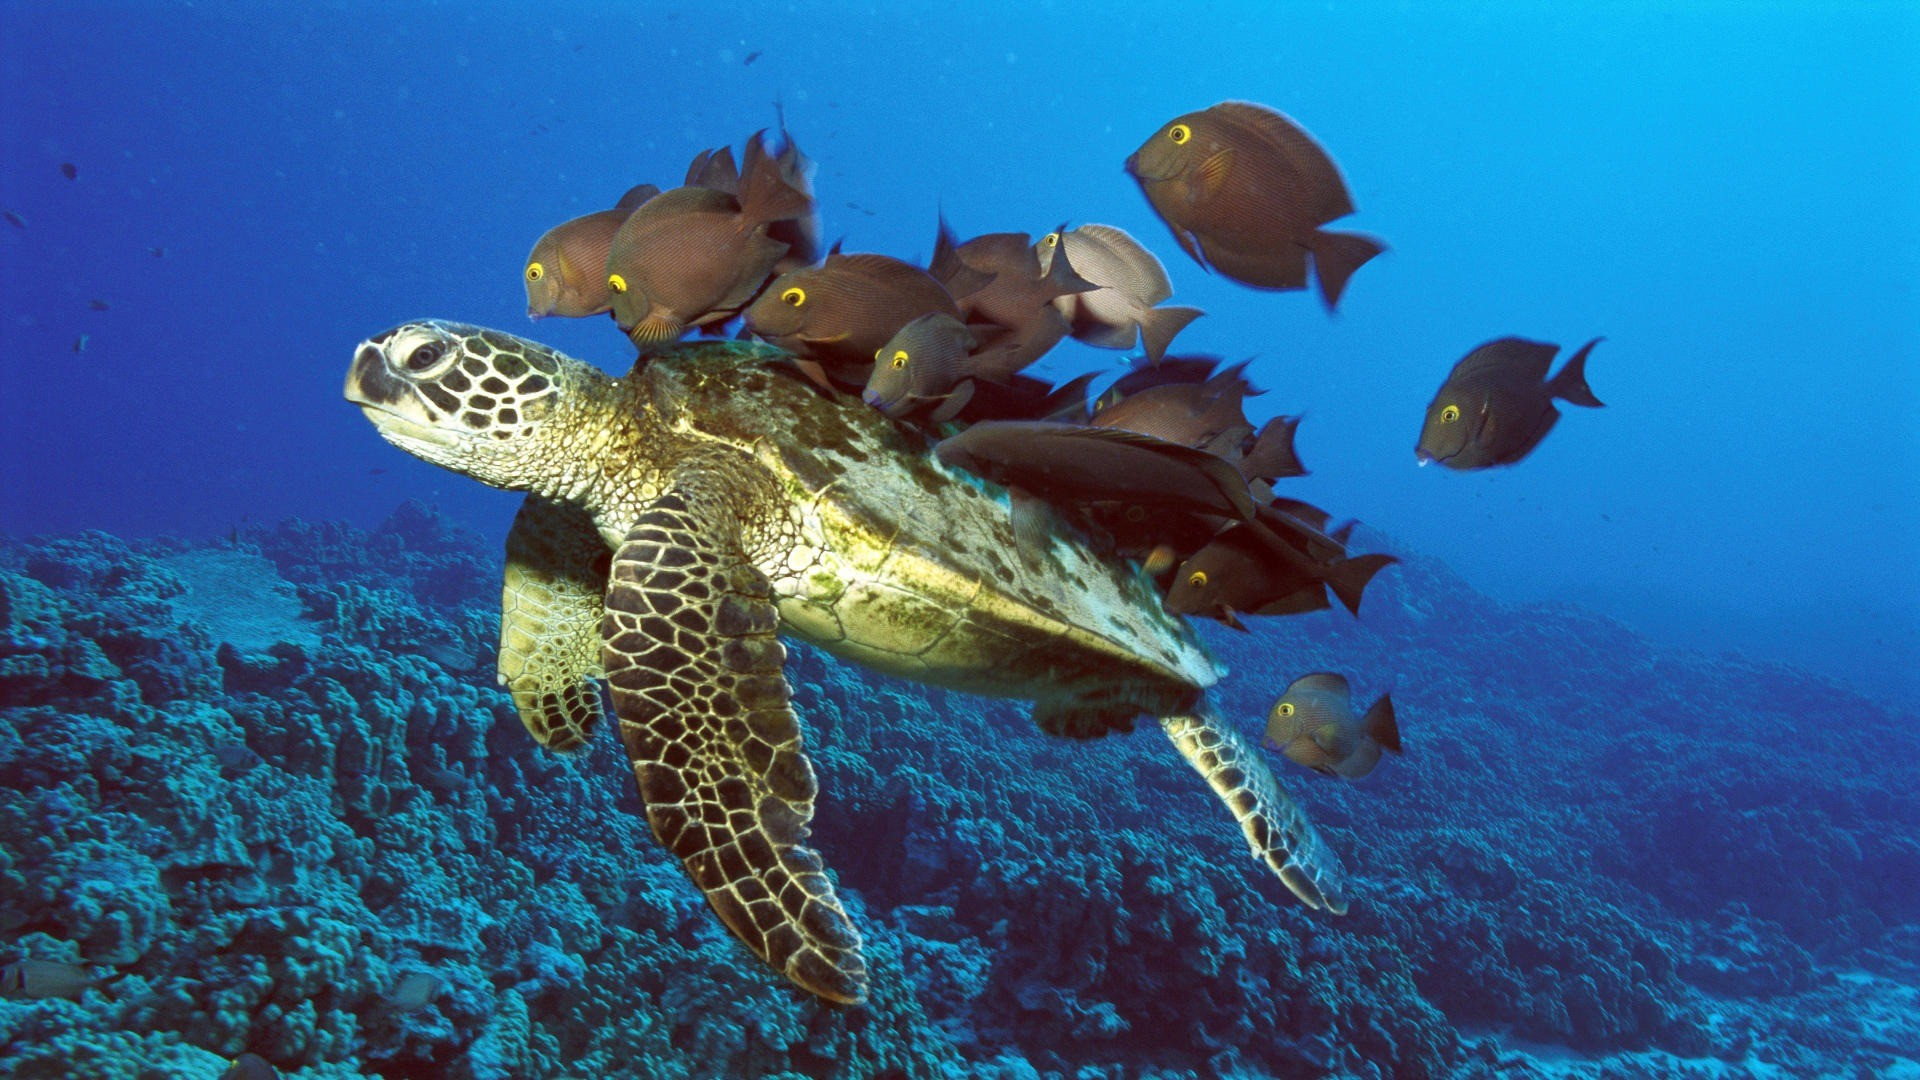 Green Sea Turtle Being Cleaned by Reef Fishes Hawaii